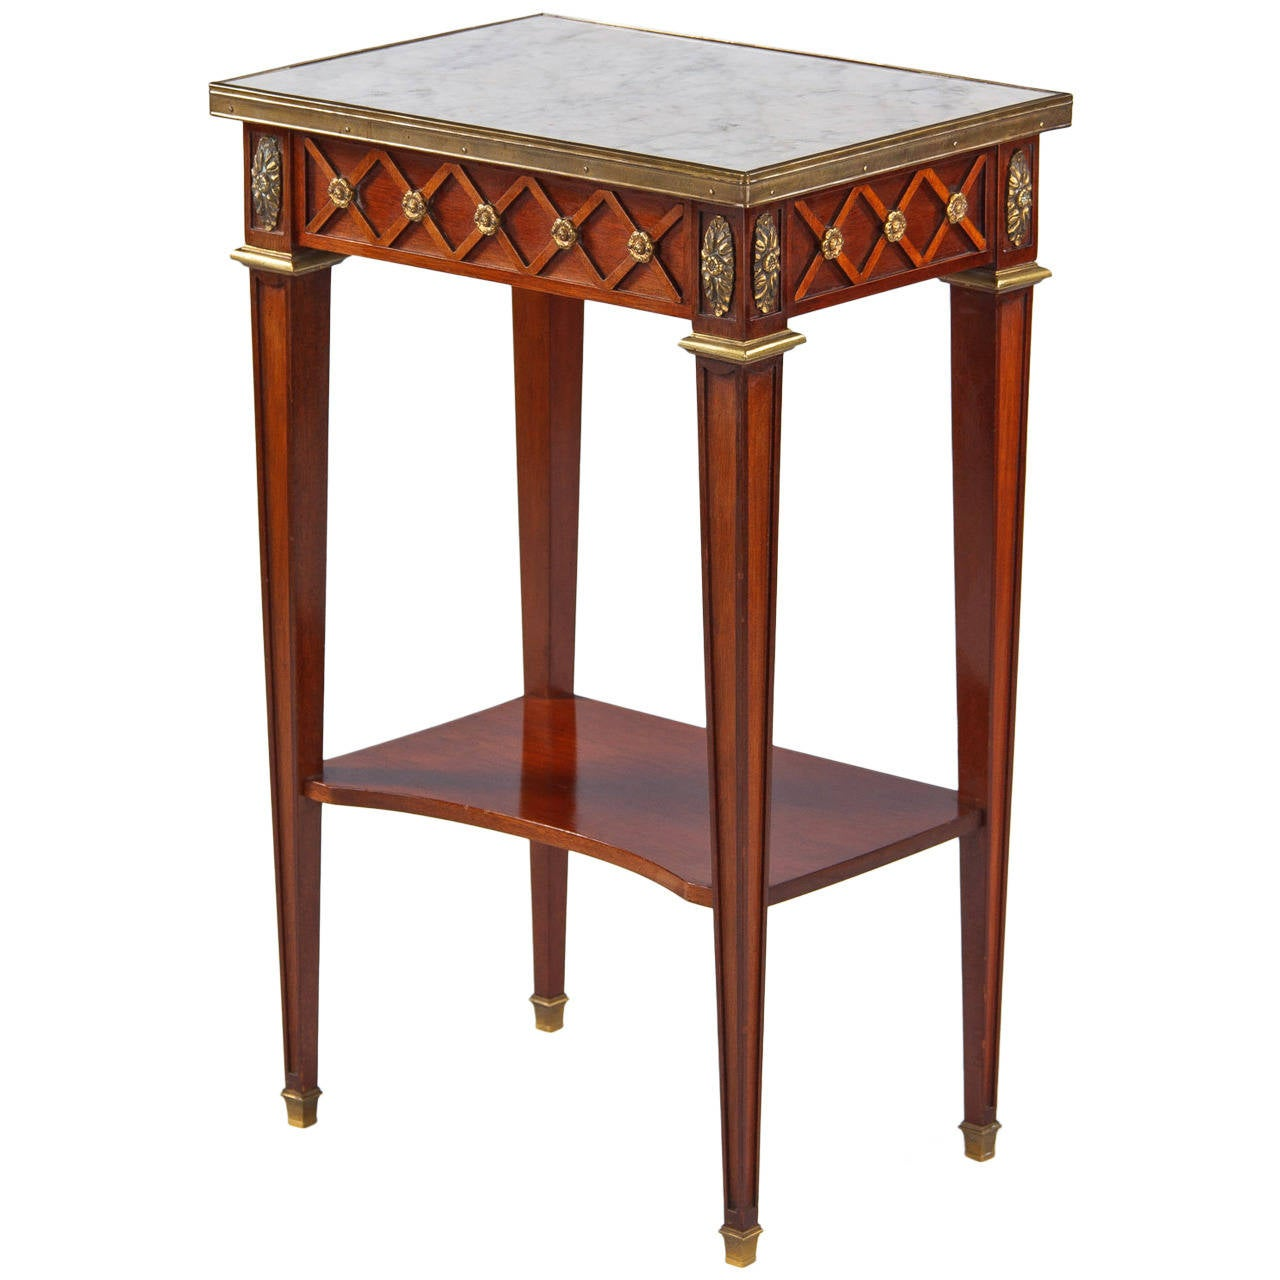 french louis xvi style mahogany side table with marble top 1900s at 1stdibs. Black Bedroom Furniture Sets. Home Design Ideas